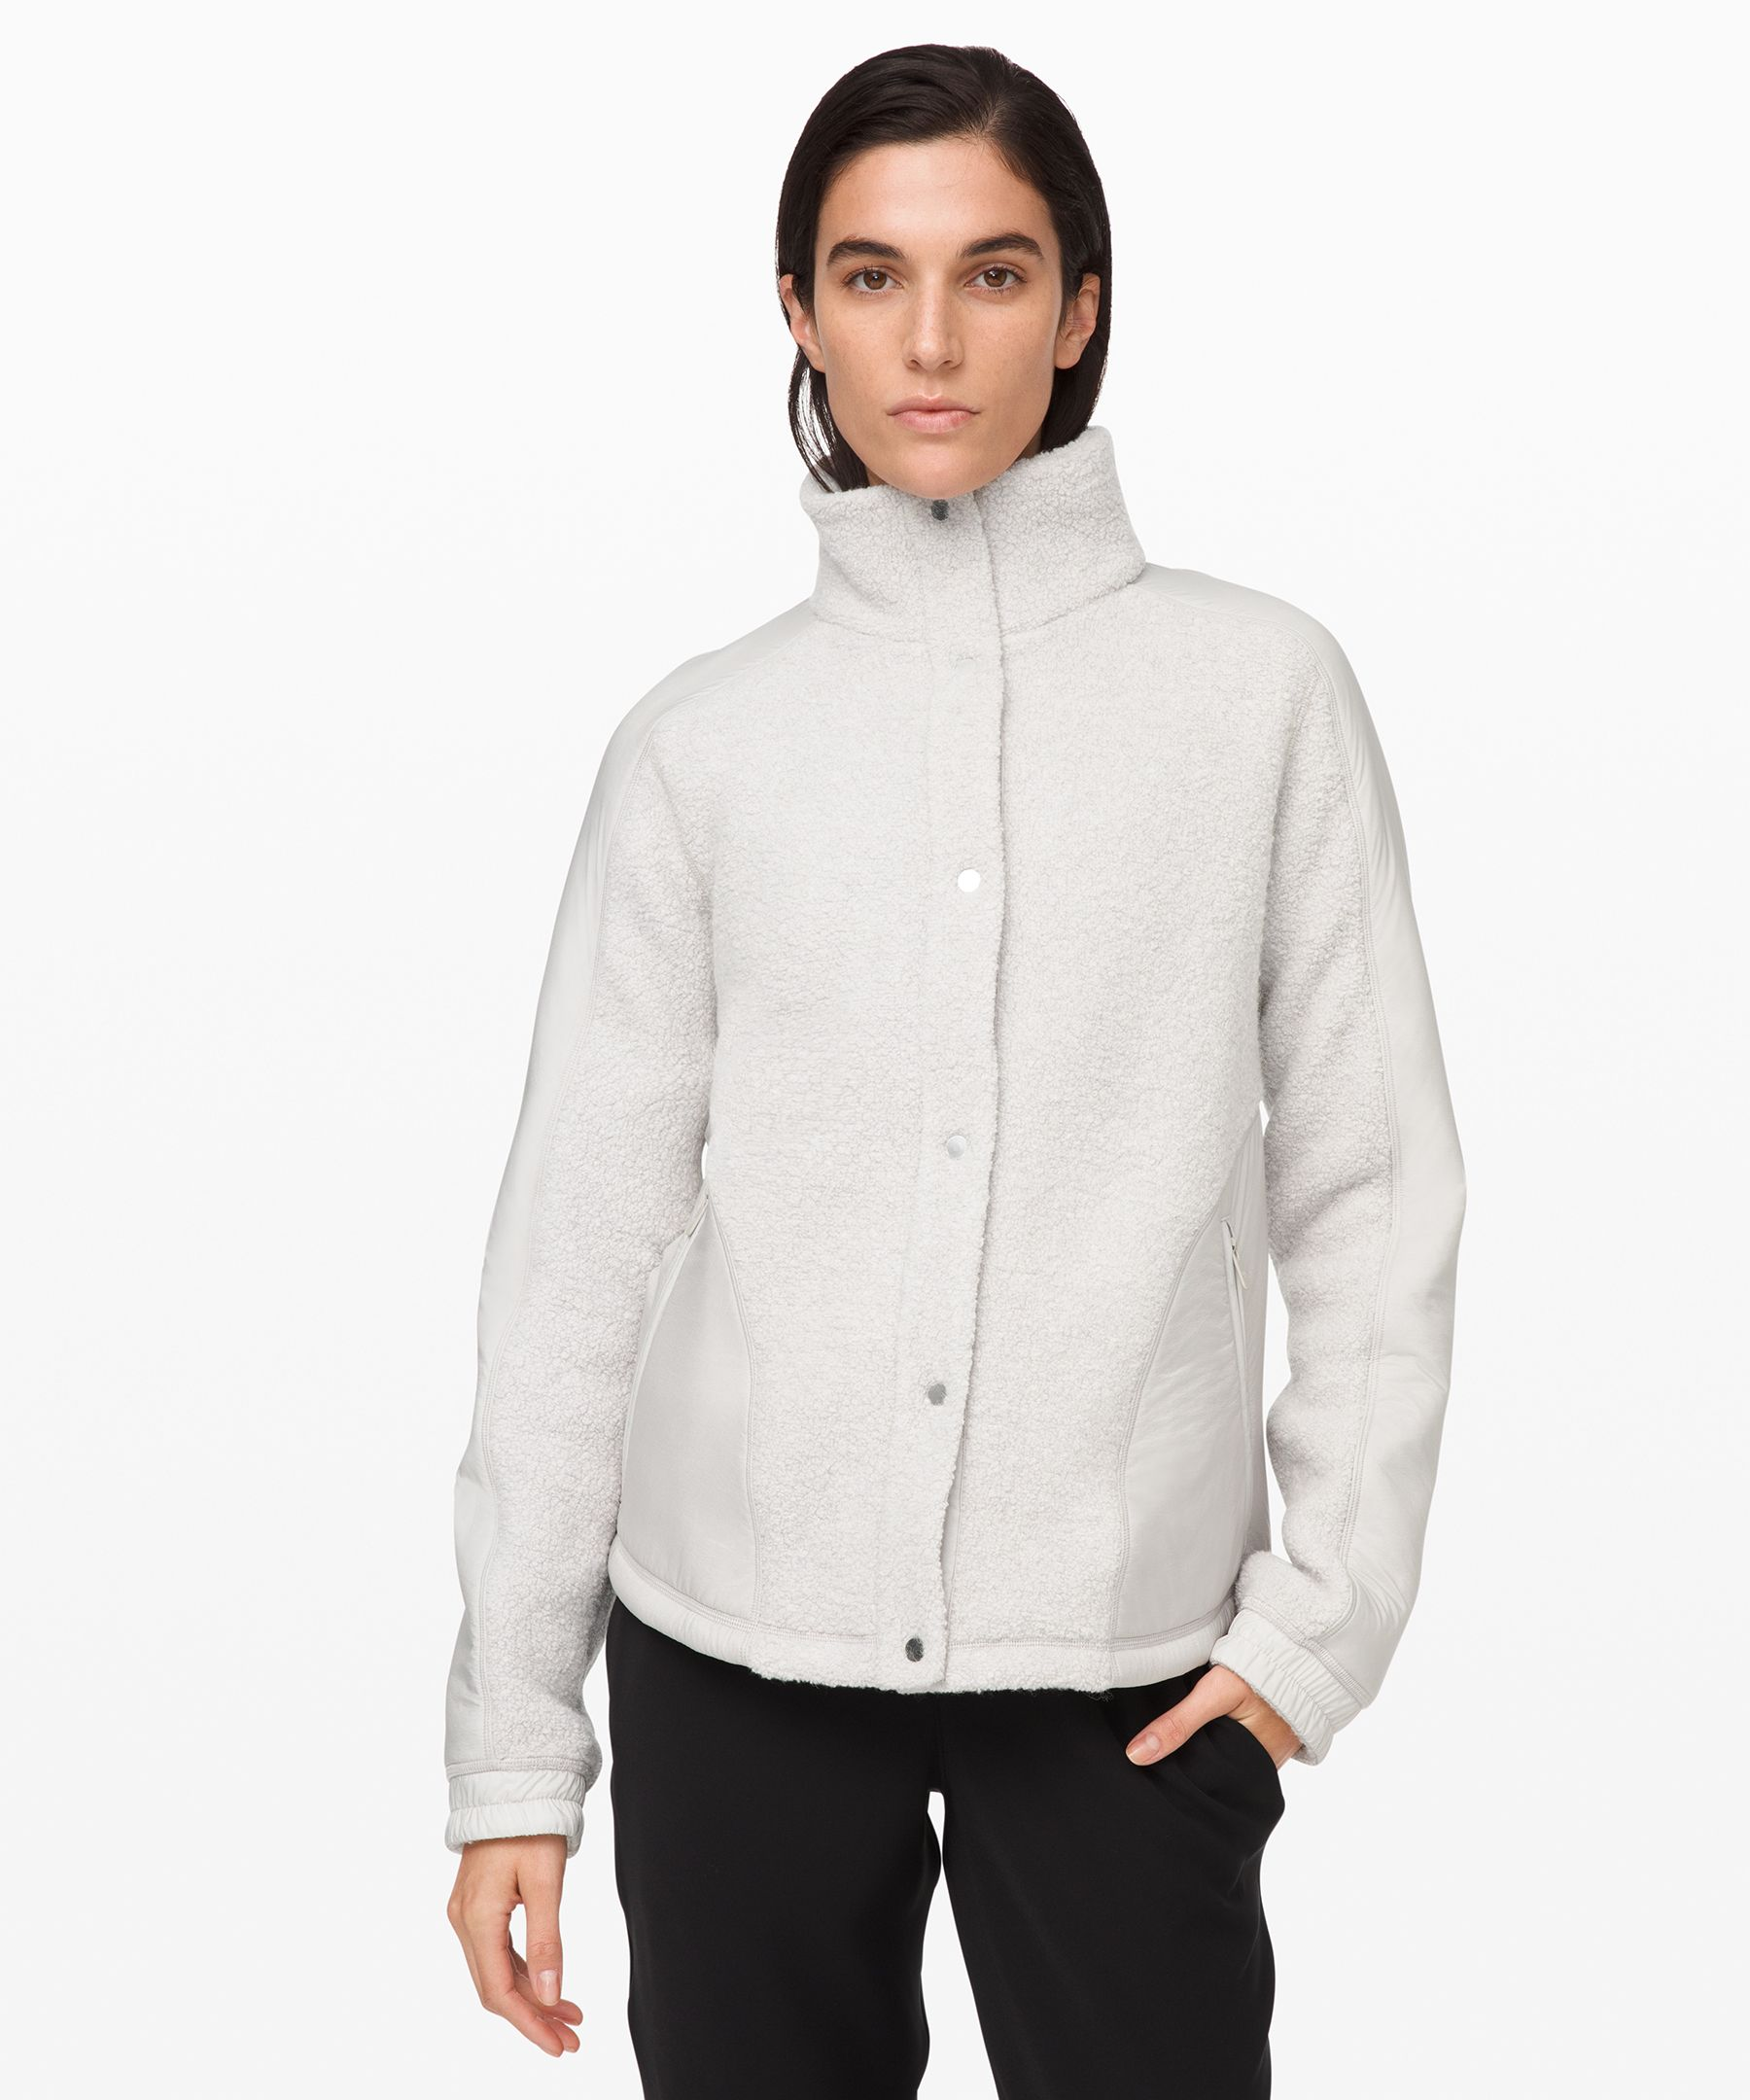 Keep the cozy going all day  long in this versatile jacket.  Cuddly Sherpa Fleece fabric  brings the warmth of natural  wool, while DWR-treated Glyde  fabric protects you from wind  and rain.